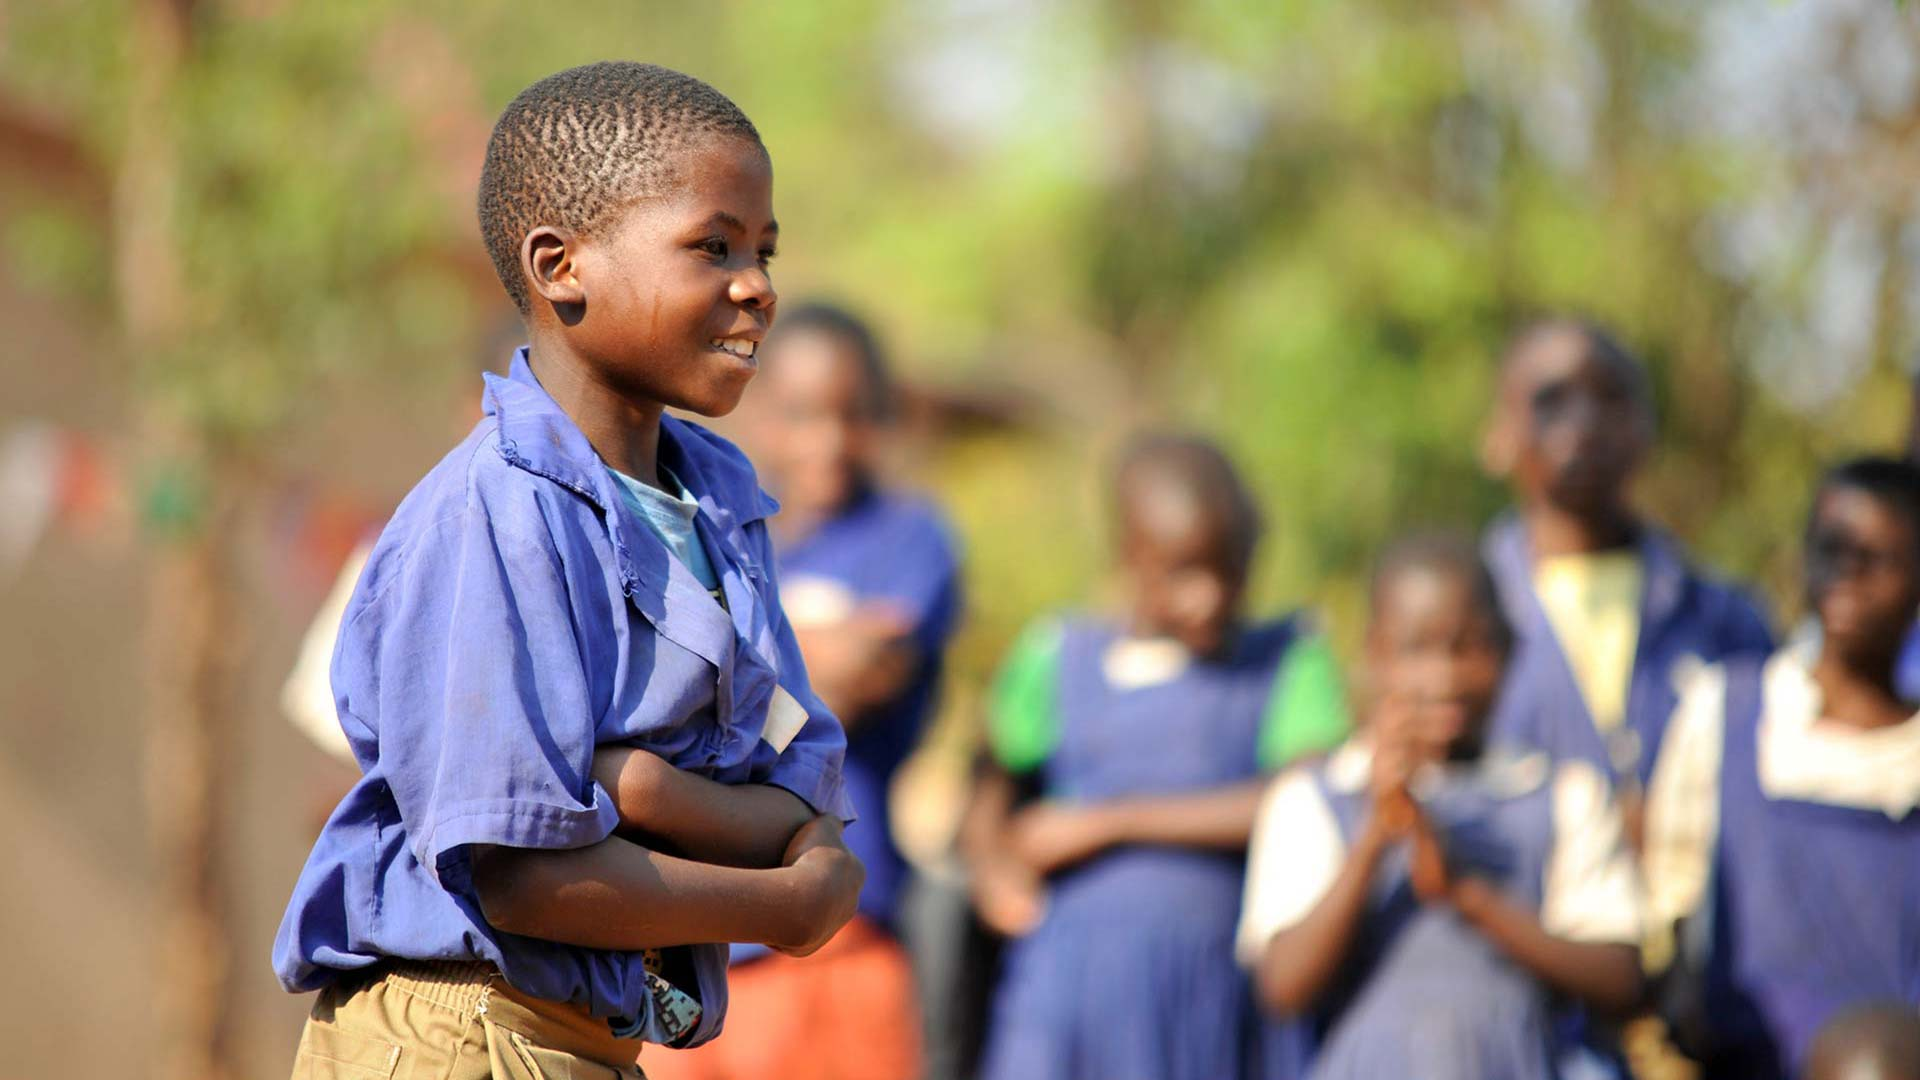 Malawian child hugging himself and smiling with more children in the background